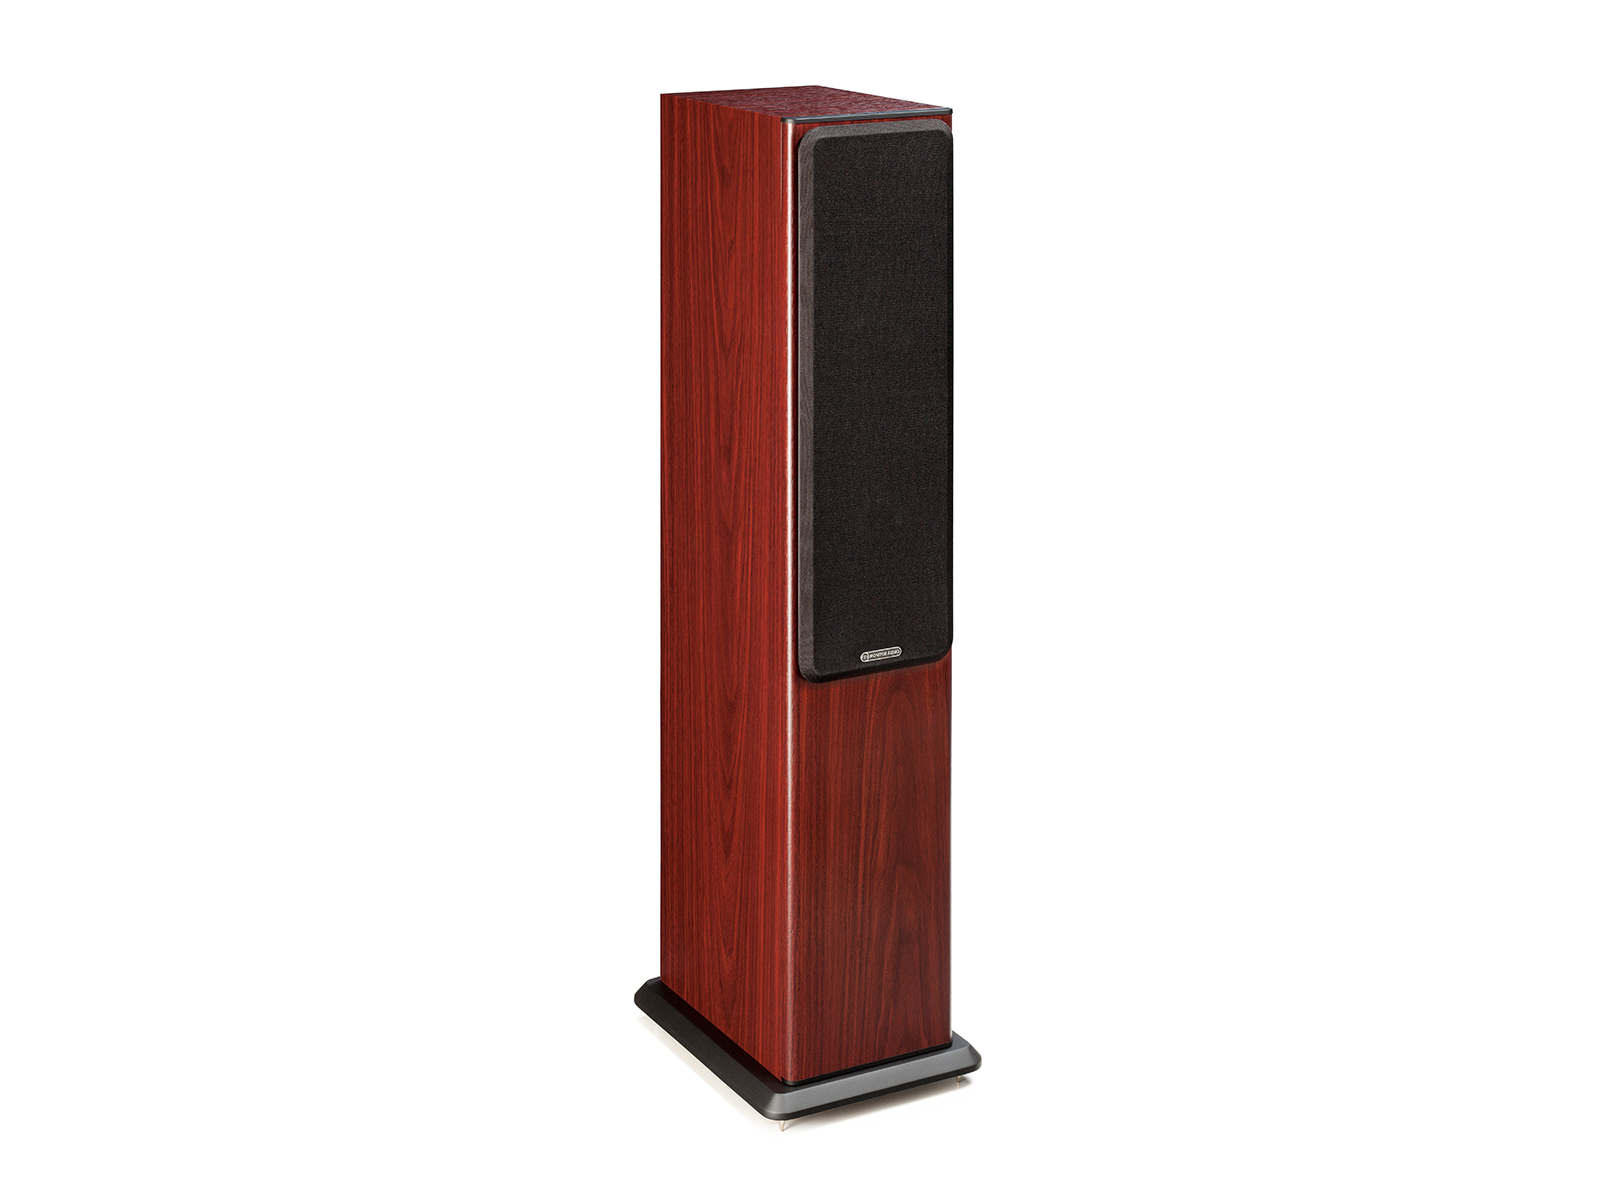 Bronze 5, floorstanding speakers, featuring a grille and a rosemah vinyl finish.